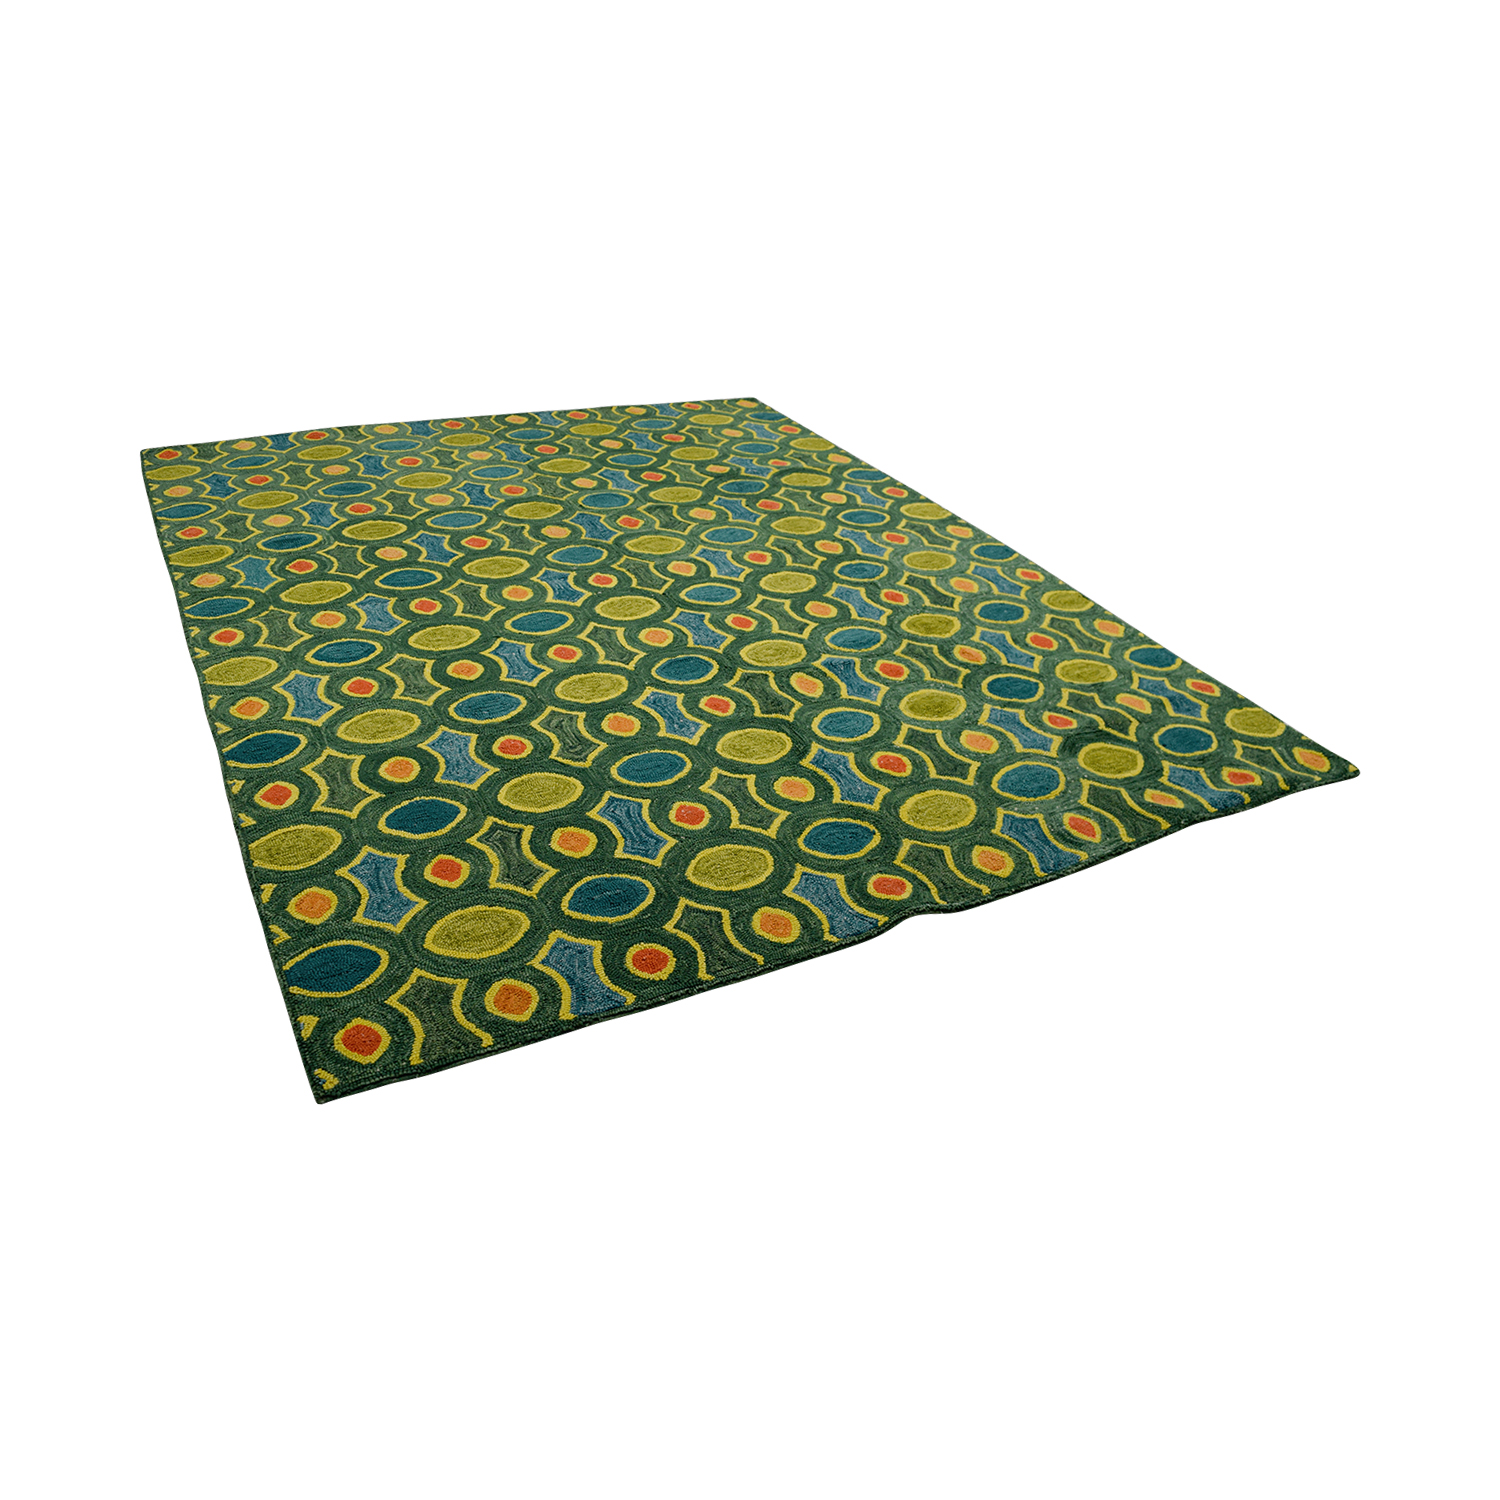 Obeetee Obeetee Hand Hooked Green Orange Blue Rug for sale